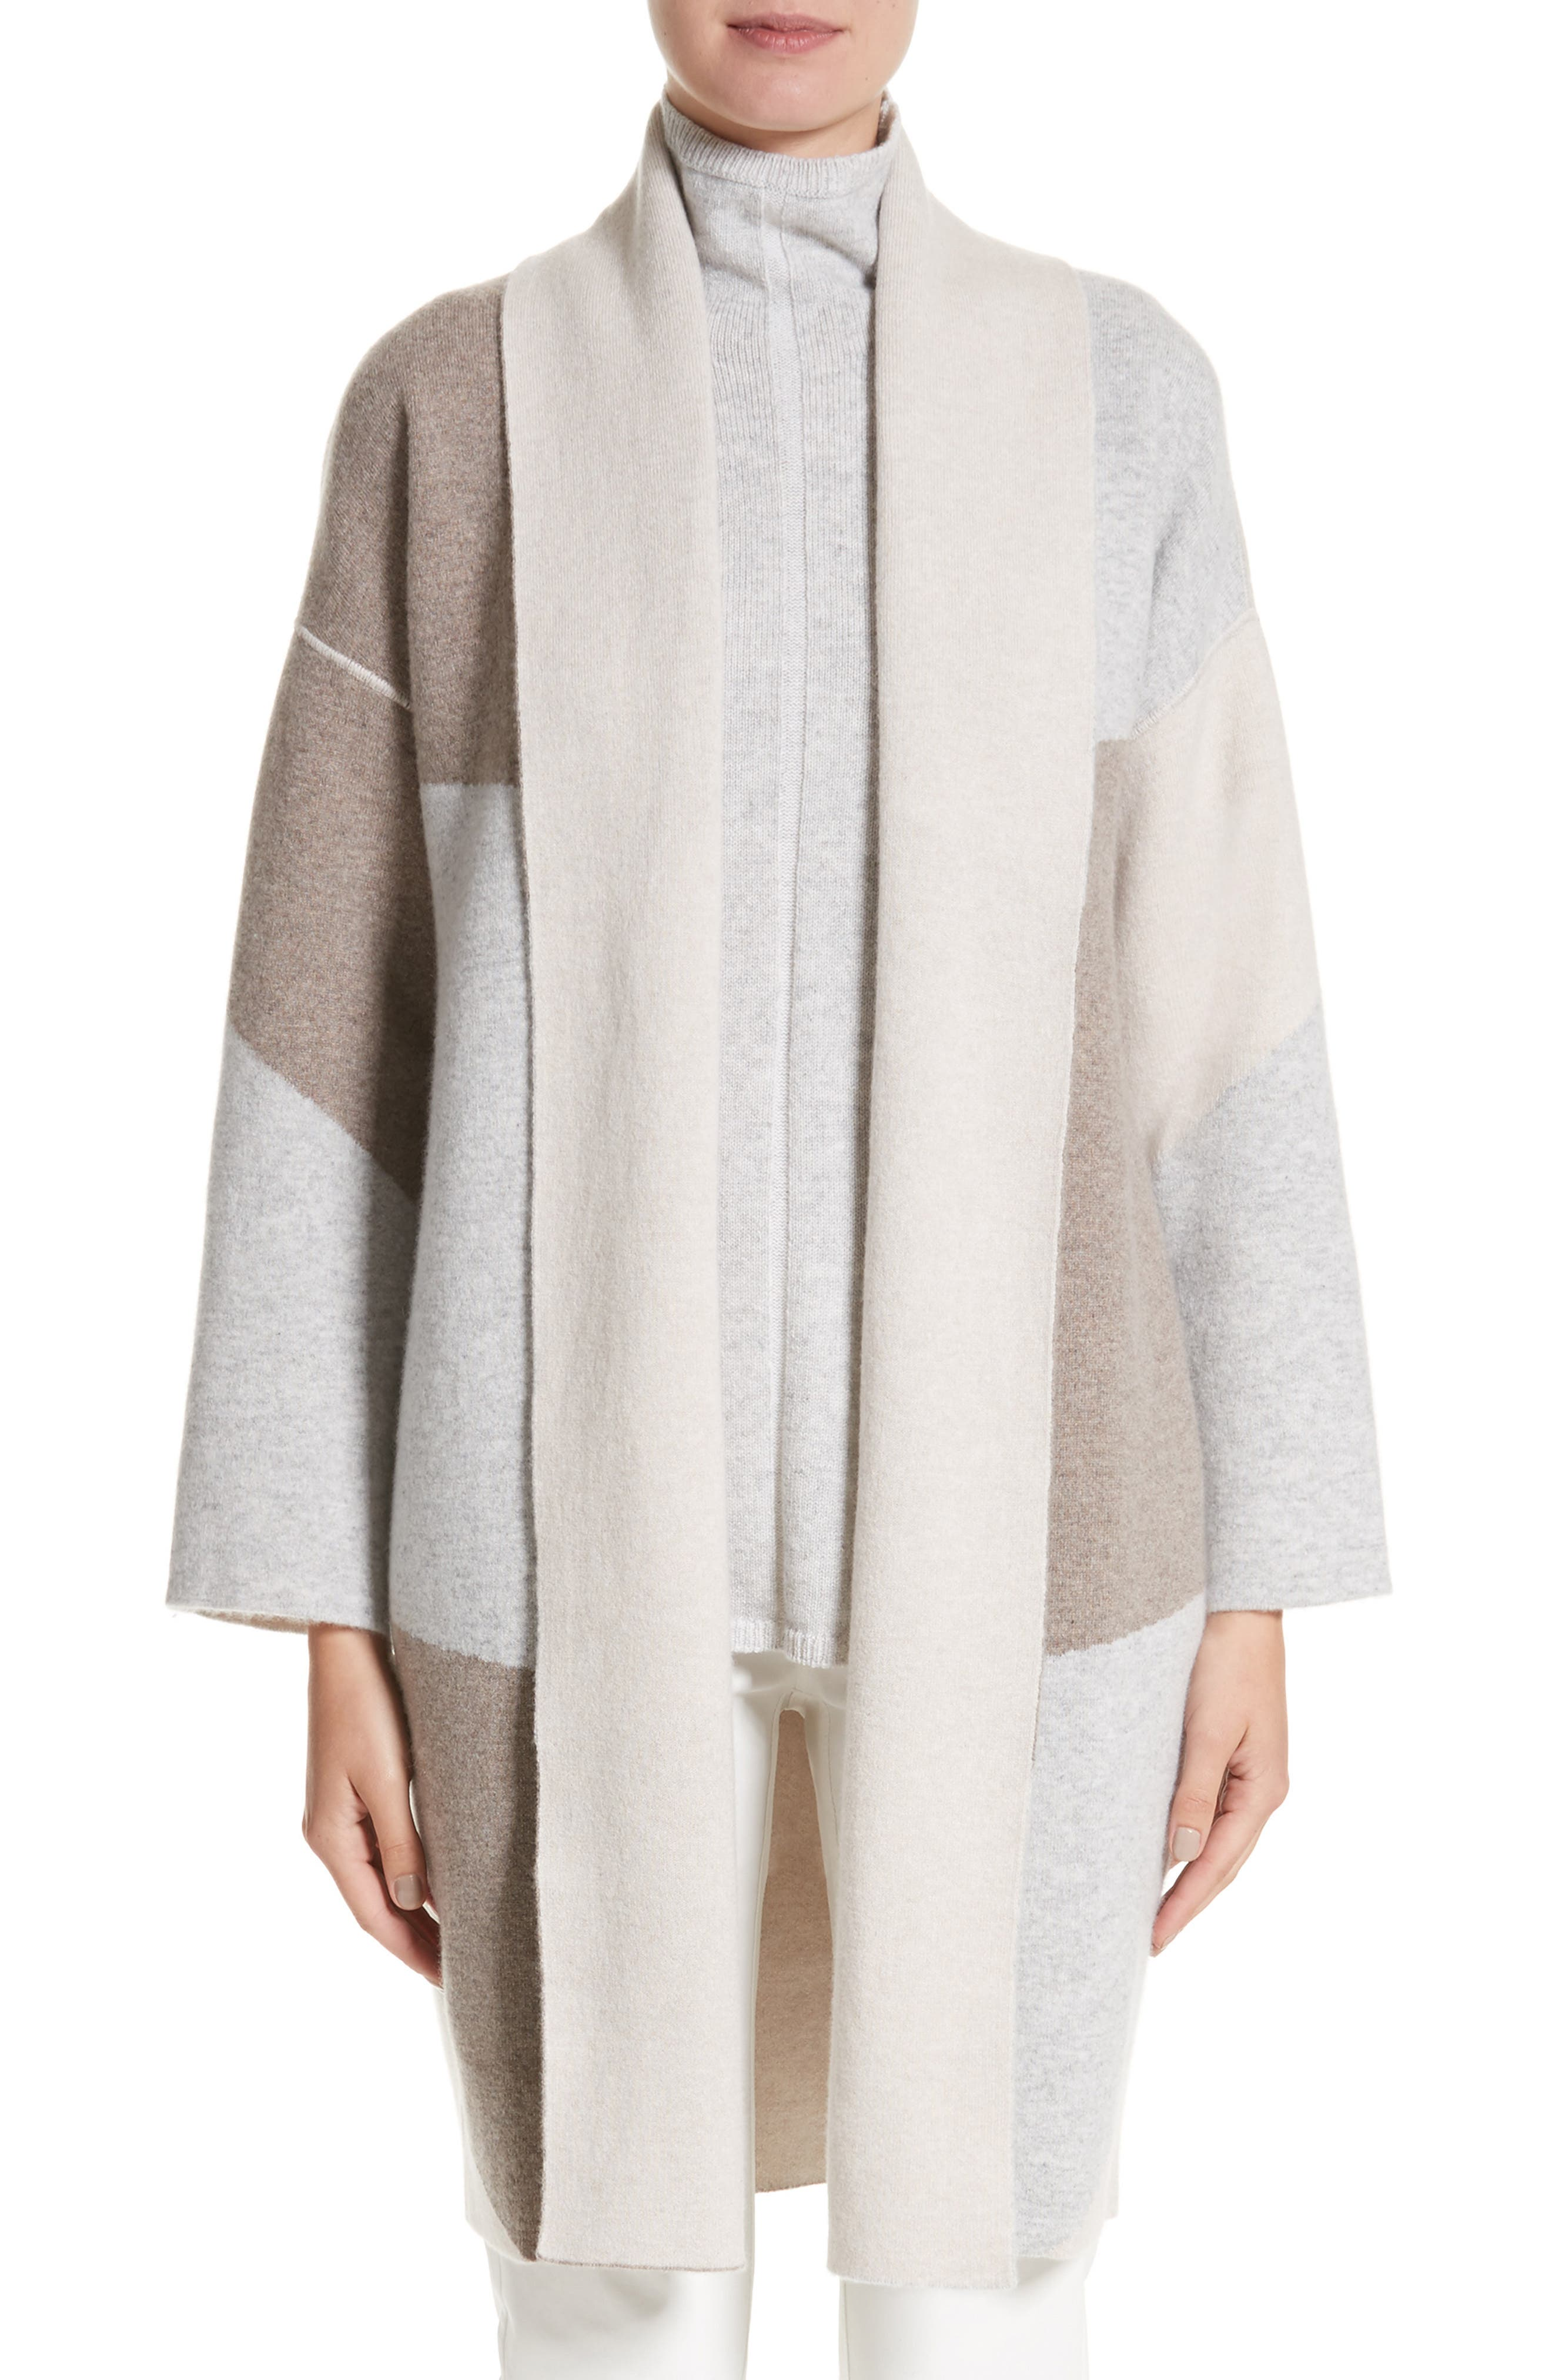 Alternate Image 1 Selected - Lafayette 148 New York Stretch Cashmere Reversible Felted Colorblock Cardigan